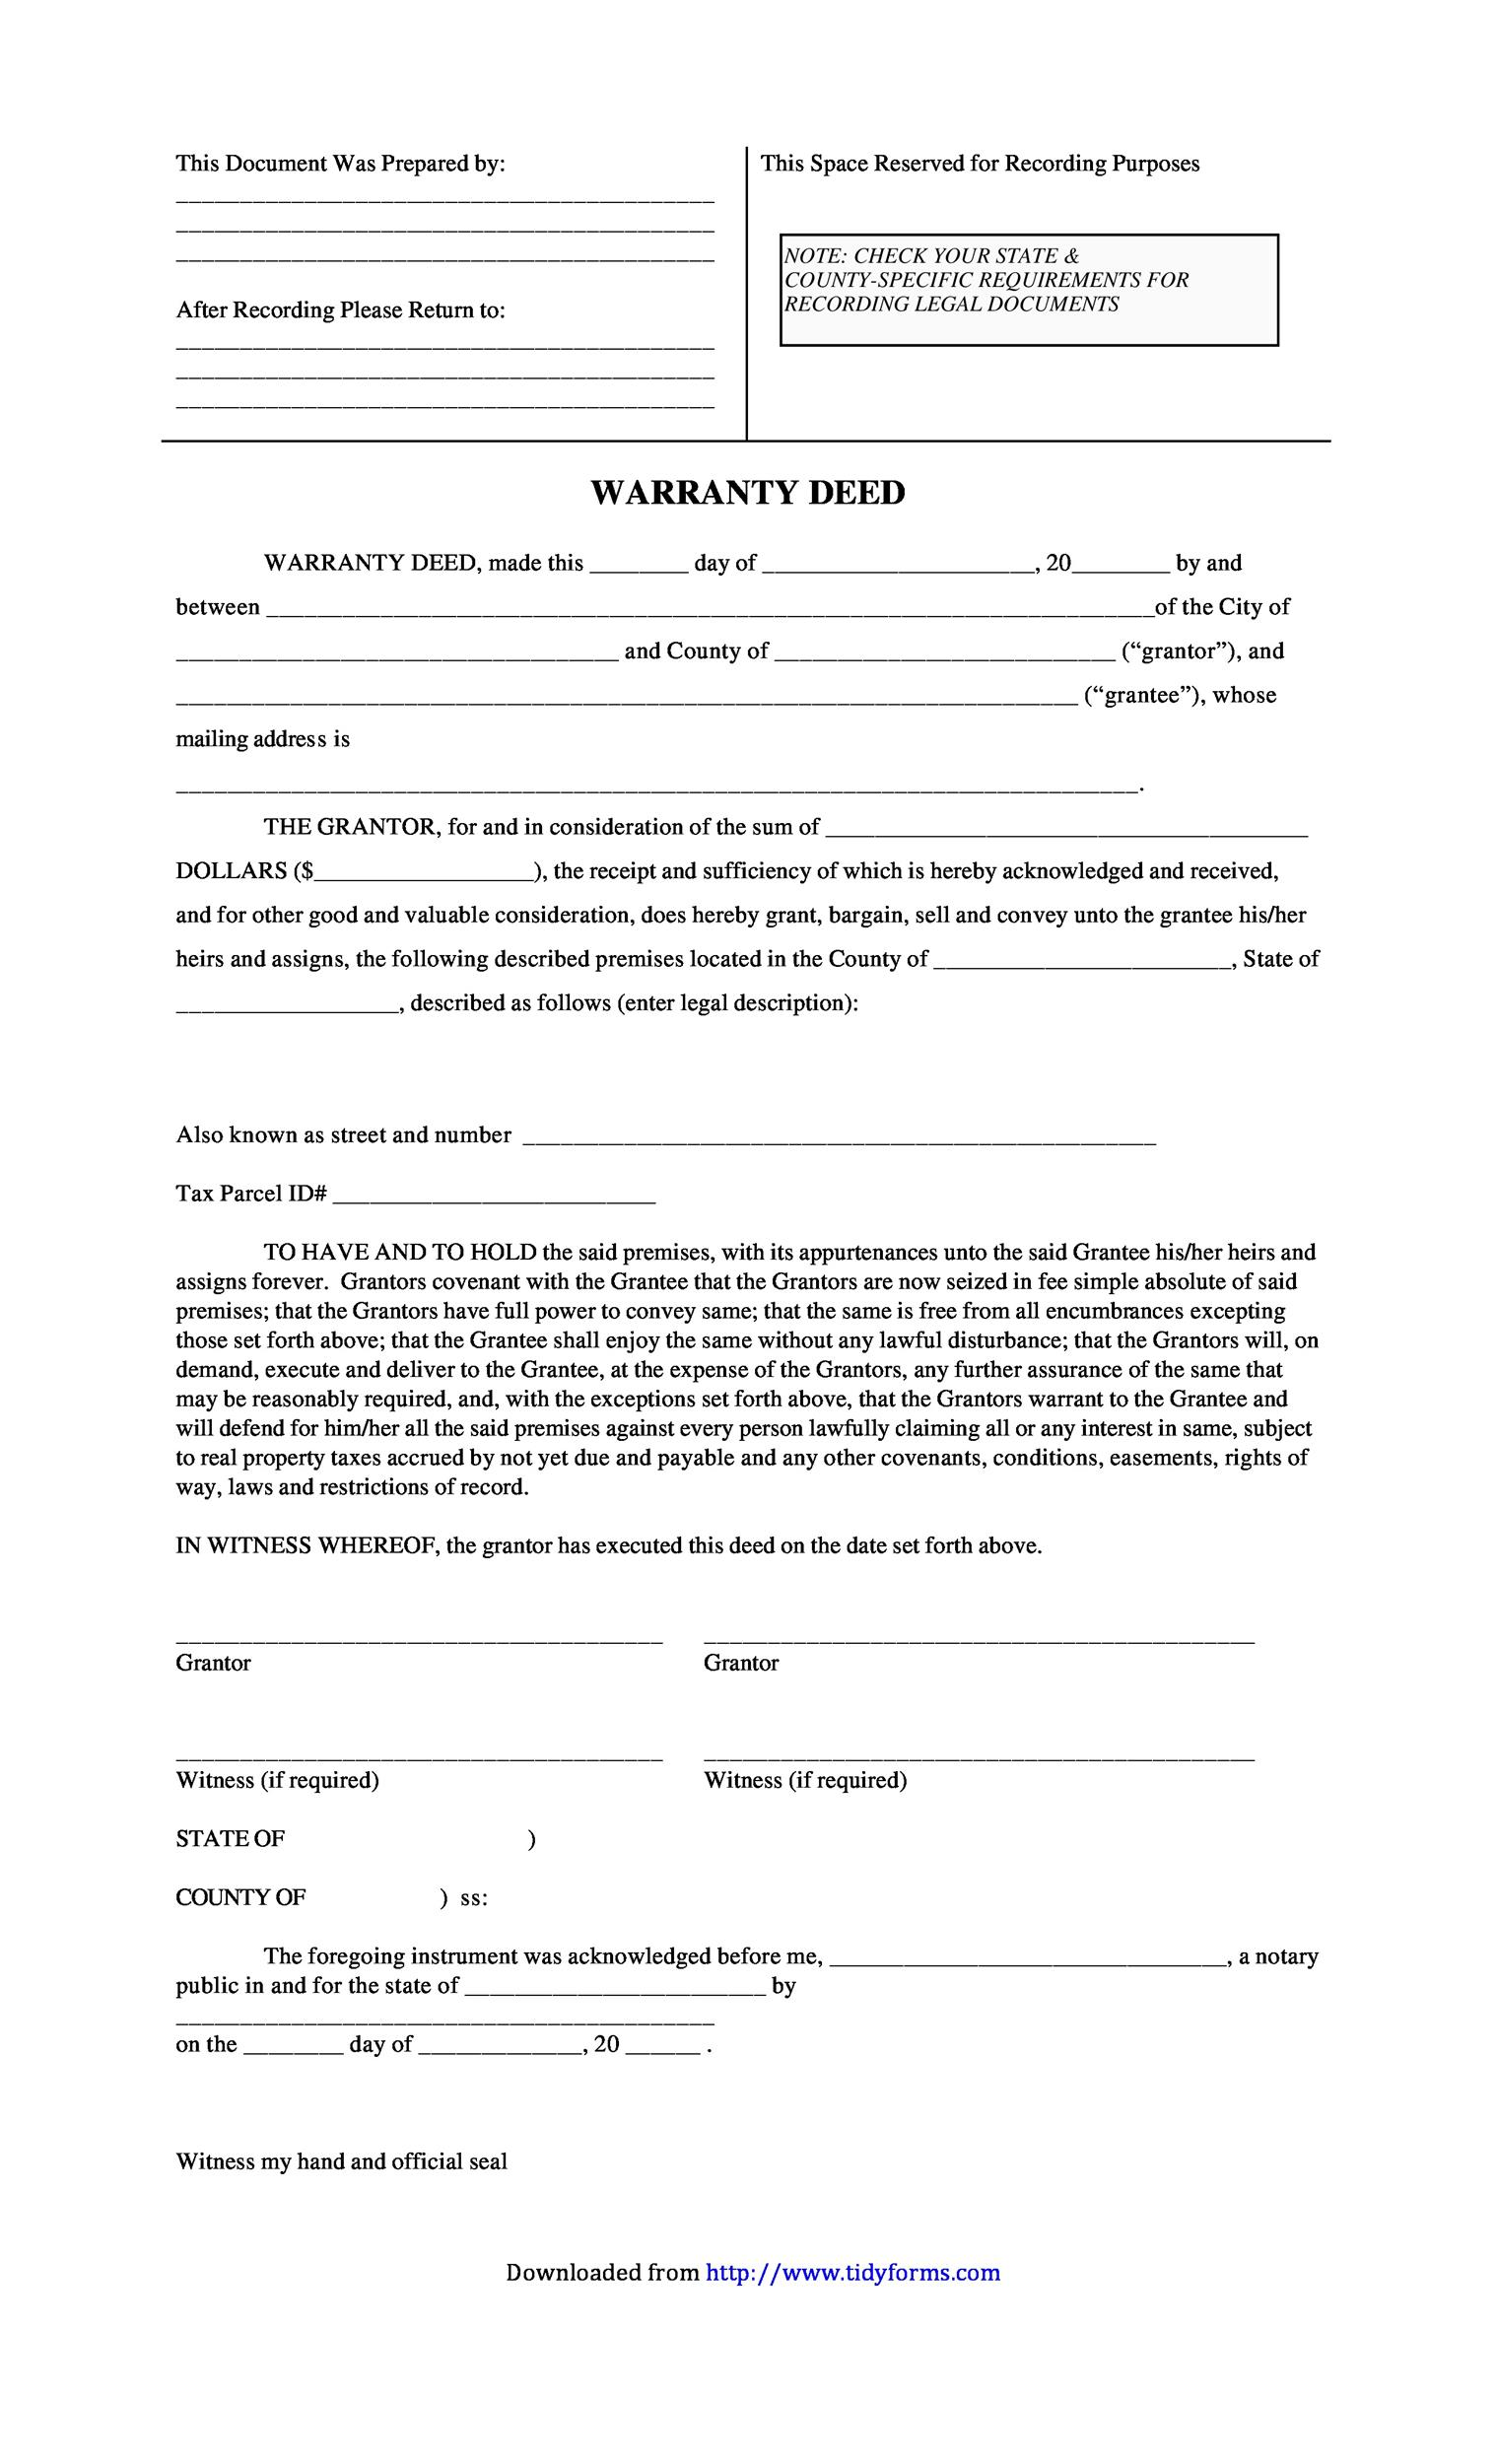 warranty deed template 24